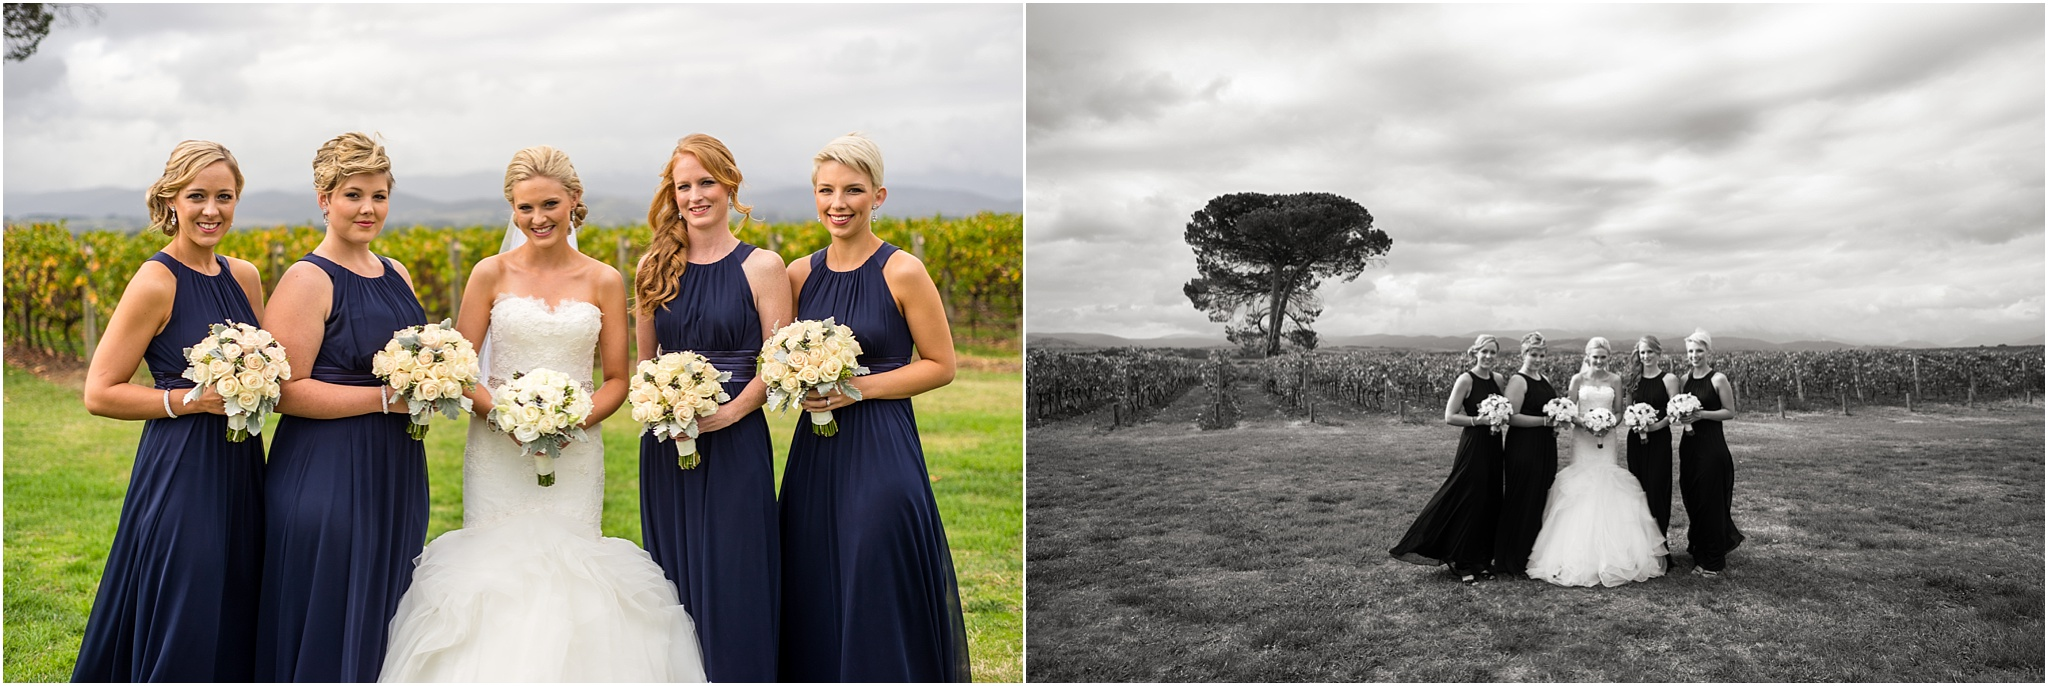 Greg Smit Photography Melbourne australia wedding photographer stones of the yarra valley 09